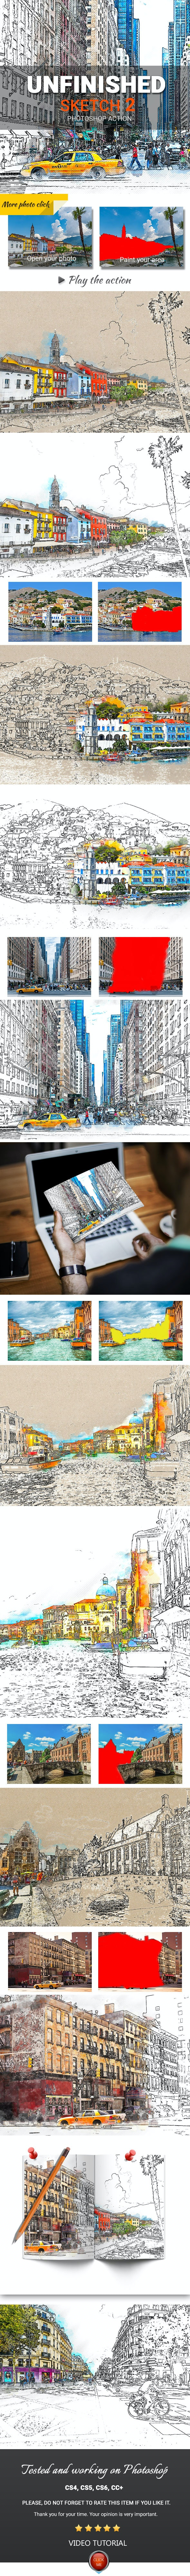 Urban Sketch2 Photoshop Action - Photo Effects Actions